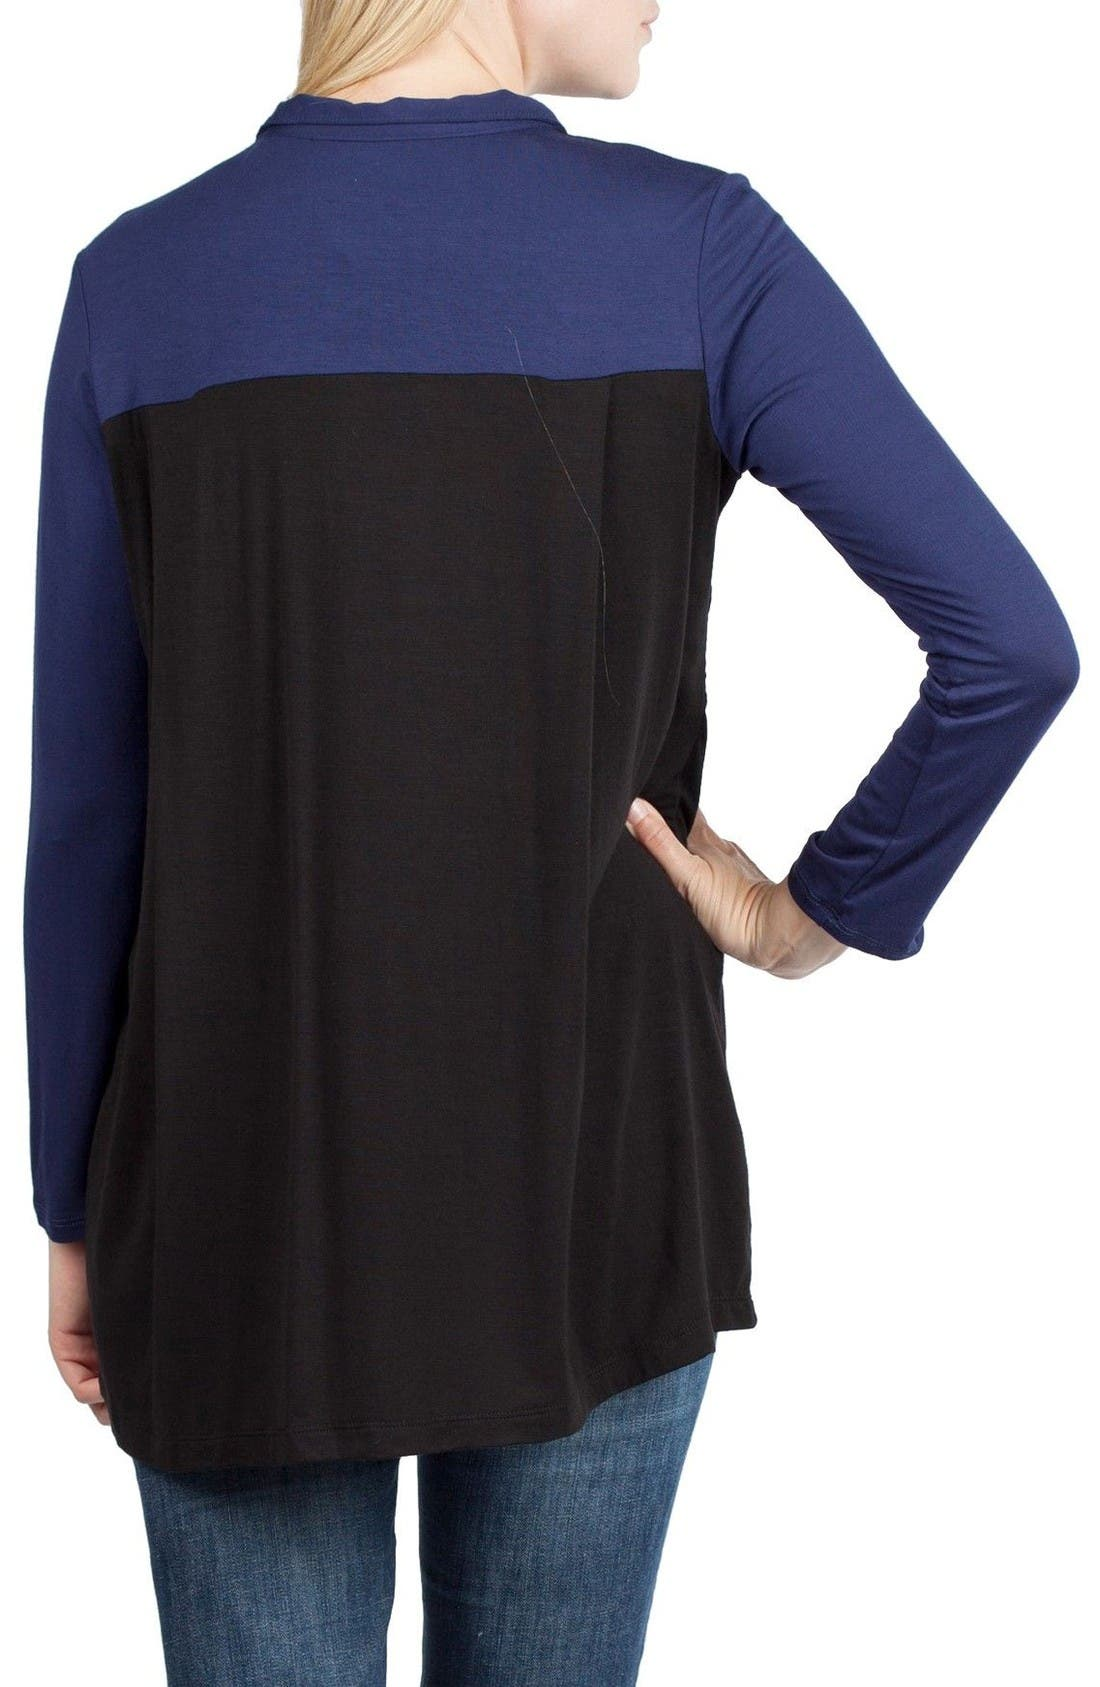 Berlin Maternity/Nursing Tunic Top,                             Alternate thumbnail 2, color,                             Black/ Navy Contrast